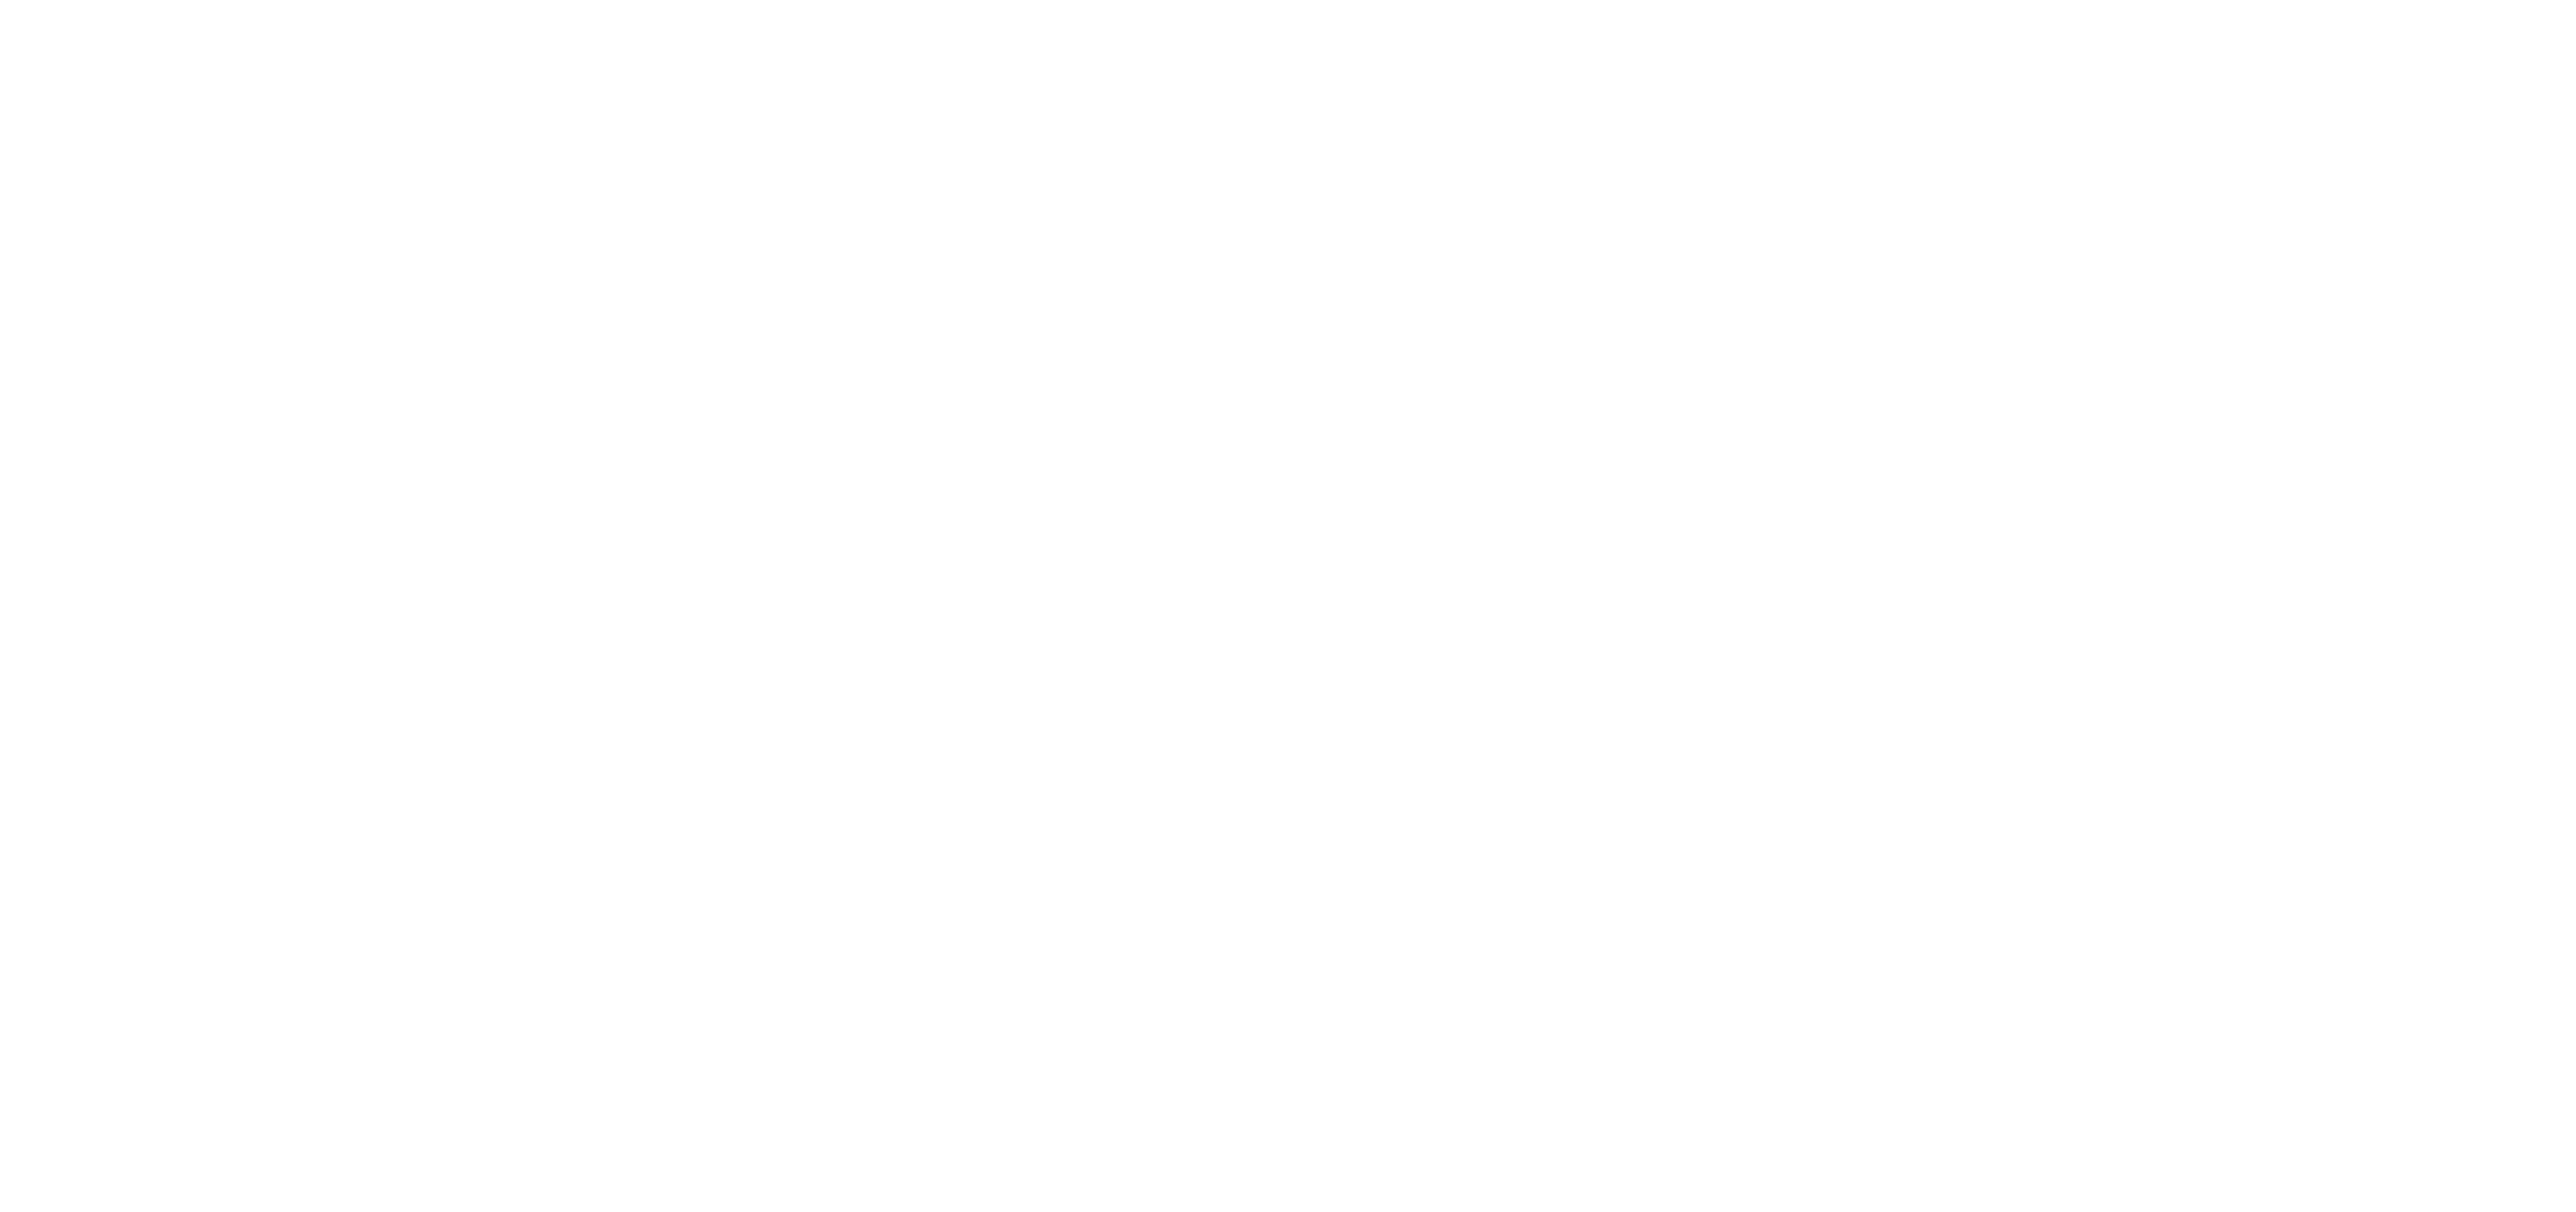 Cherry Digital Media Logo